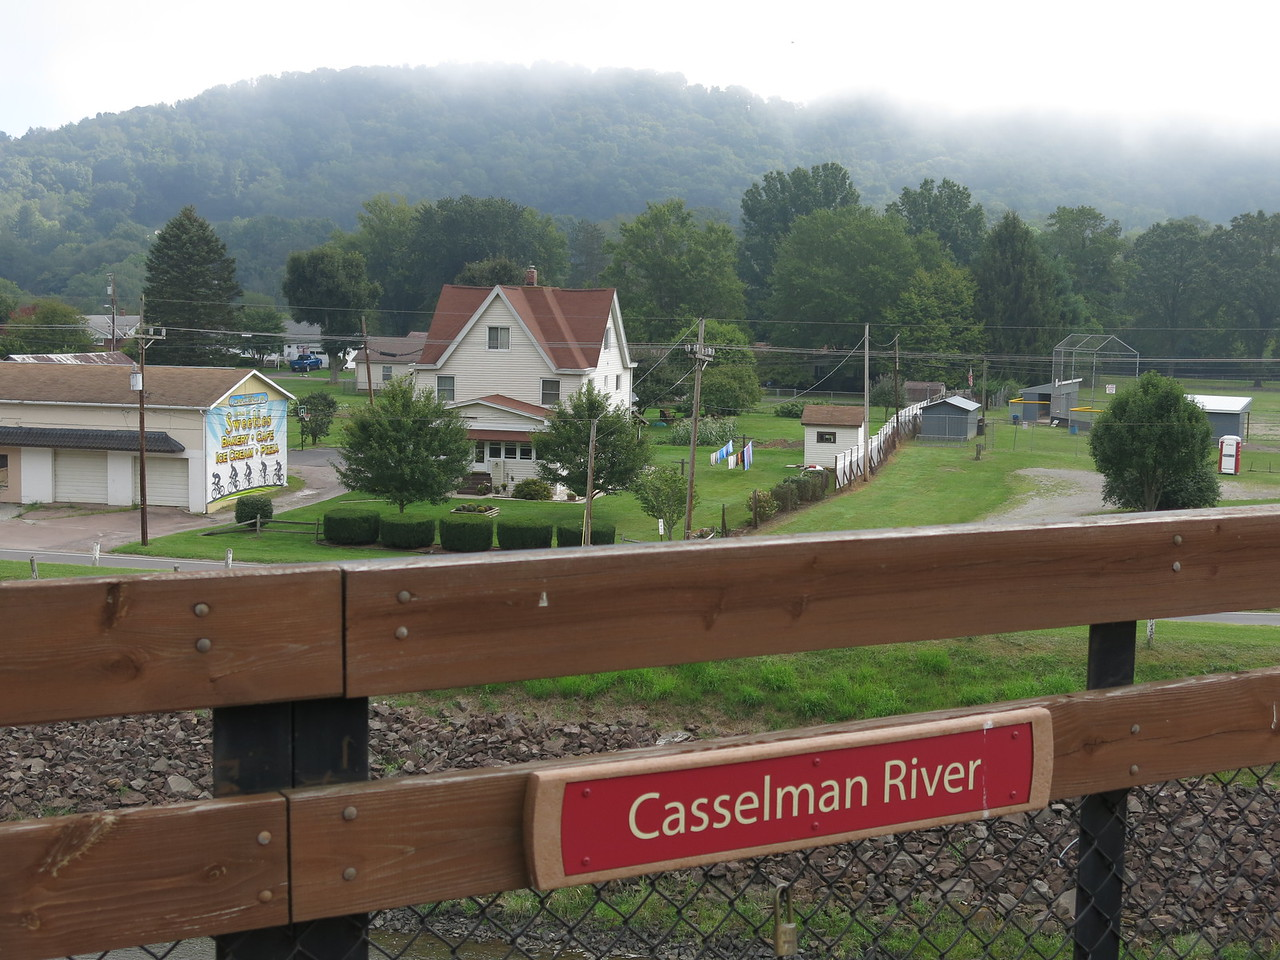 Yep, it is the Casselman